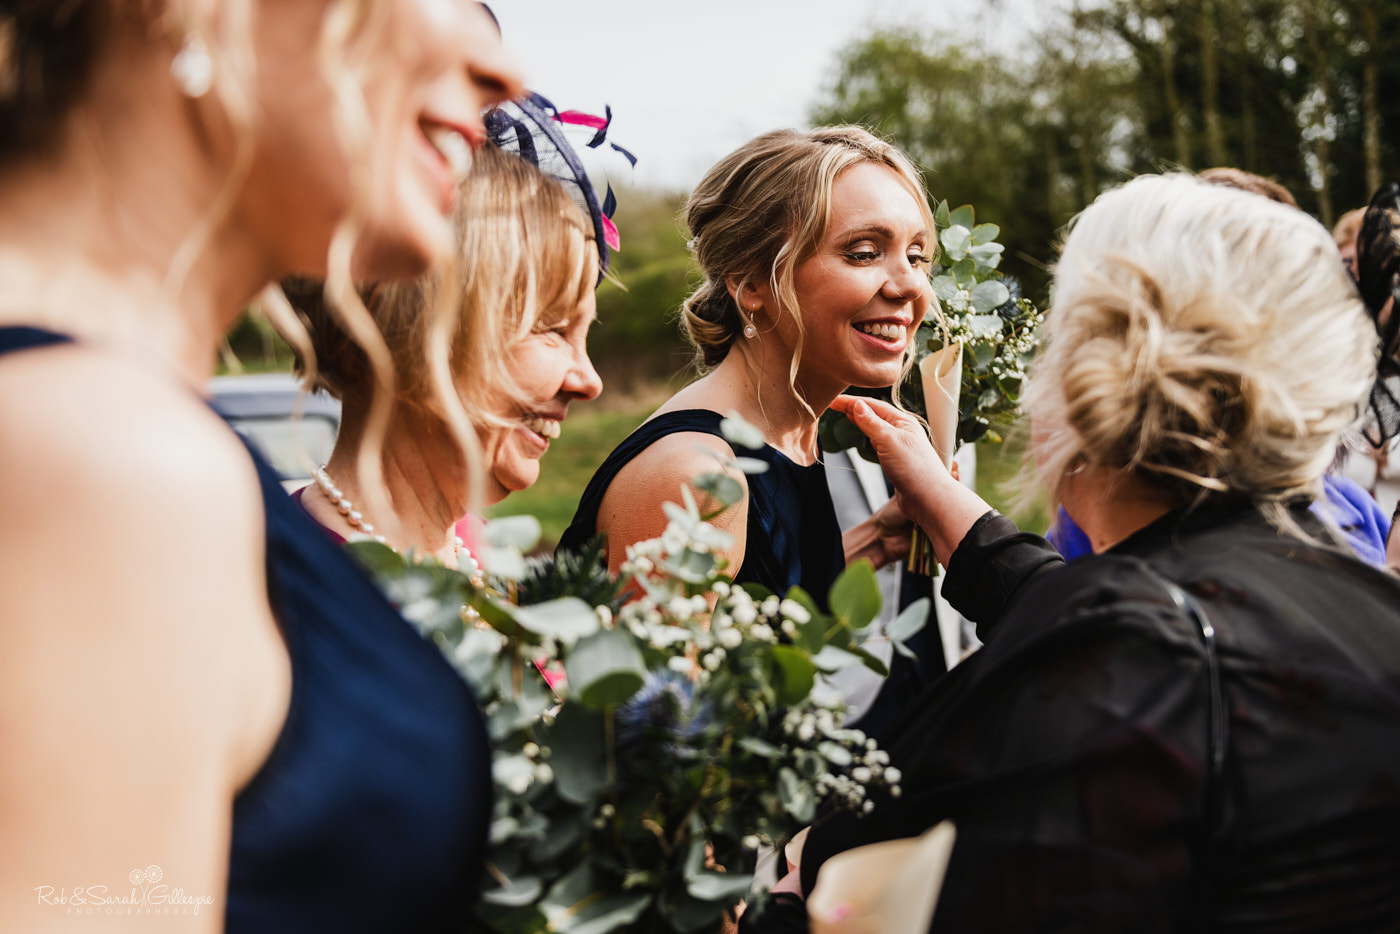 Wedding guests congratulate bride and groom at St Kenelm's church in Romsley